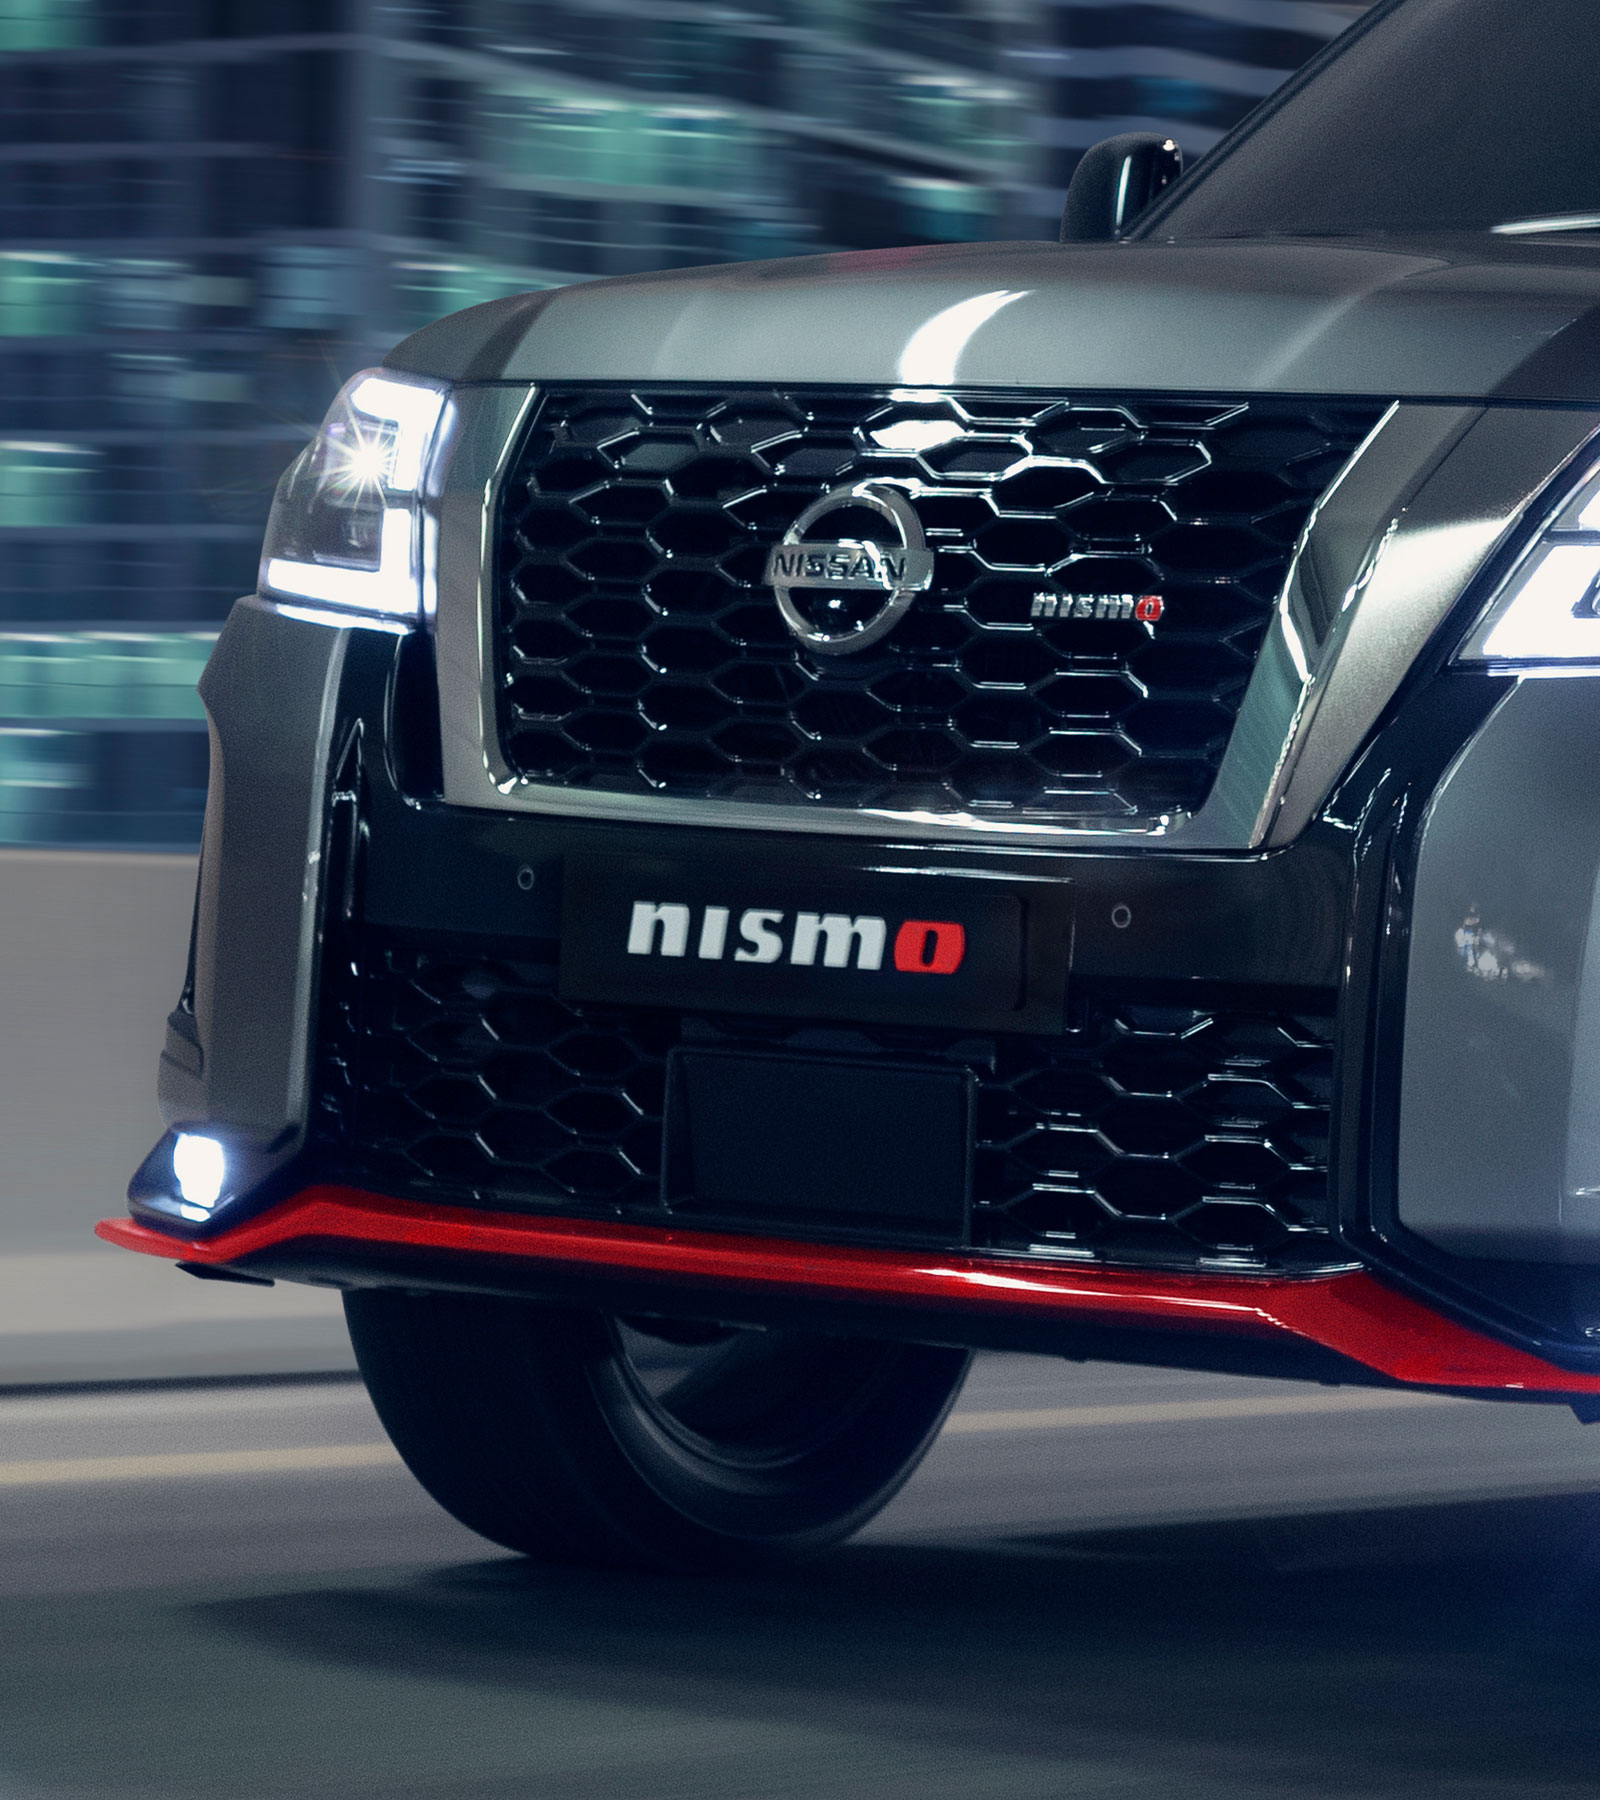 Nissan PATROL NISMO front shot on the highway road